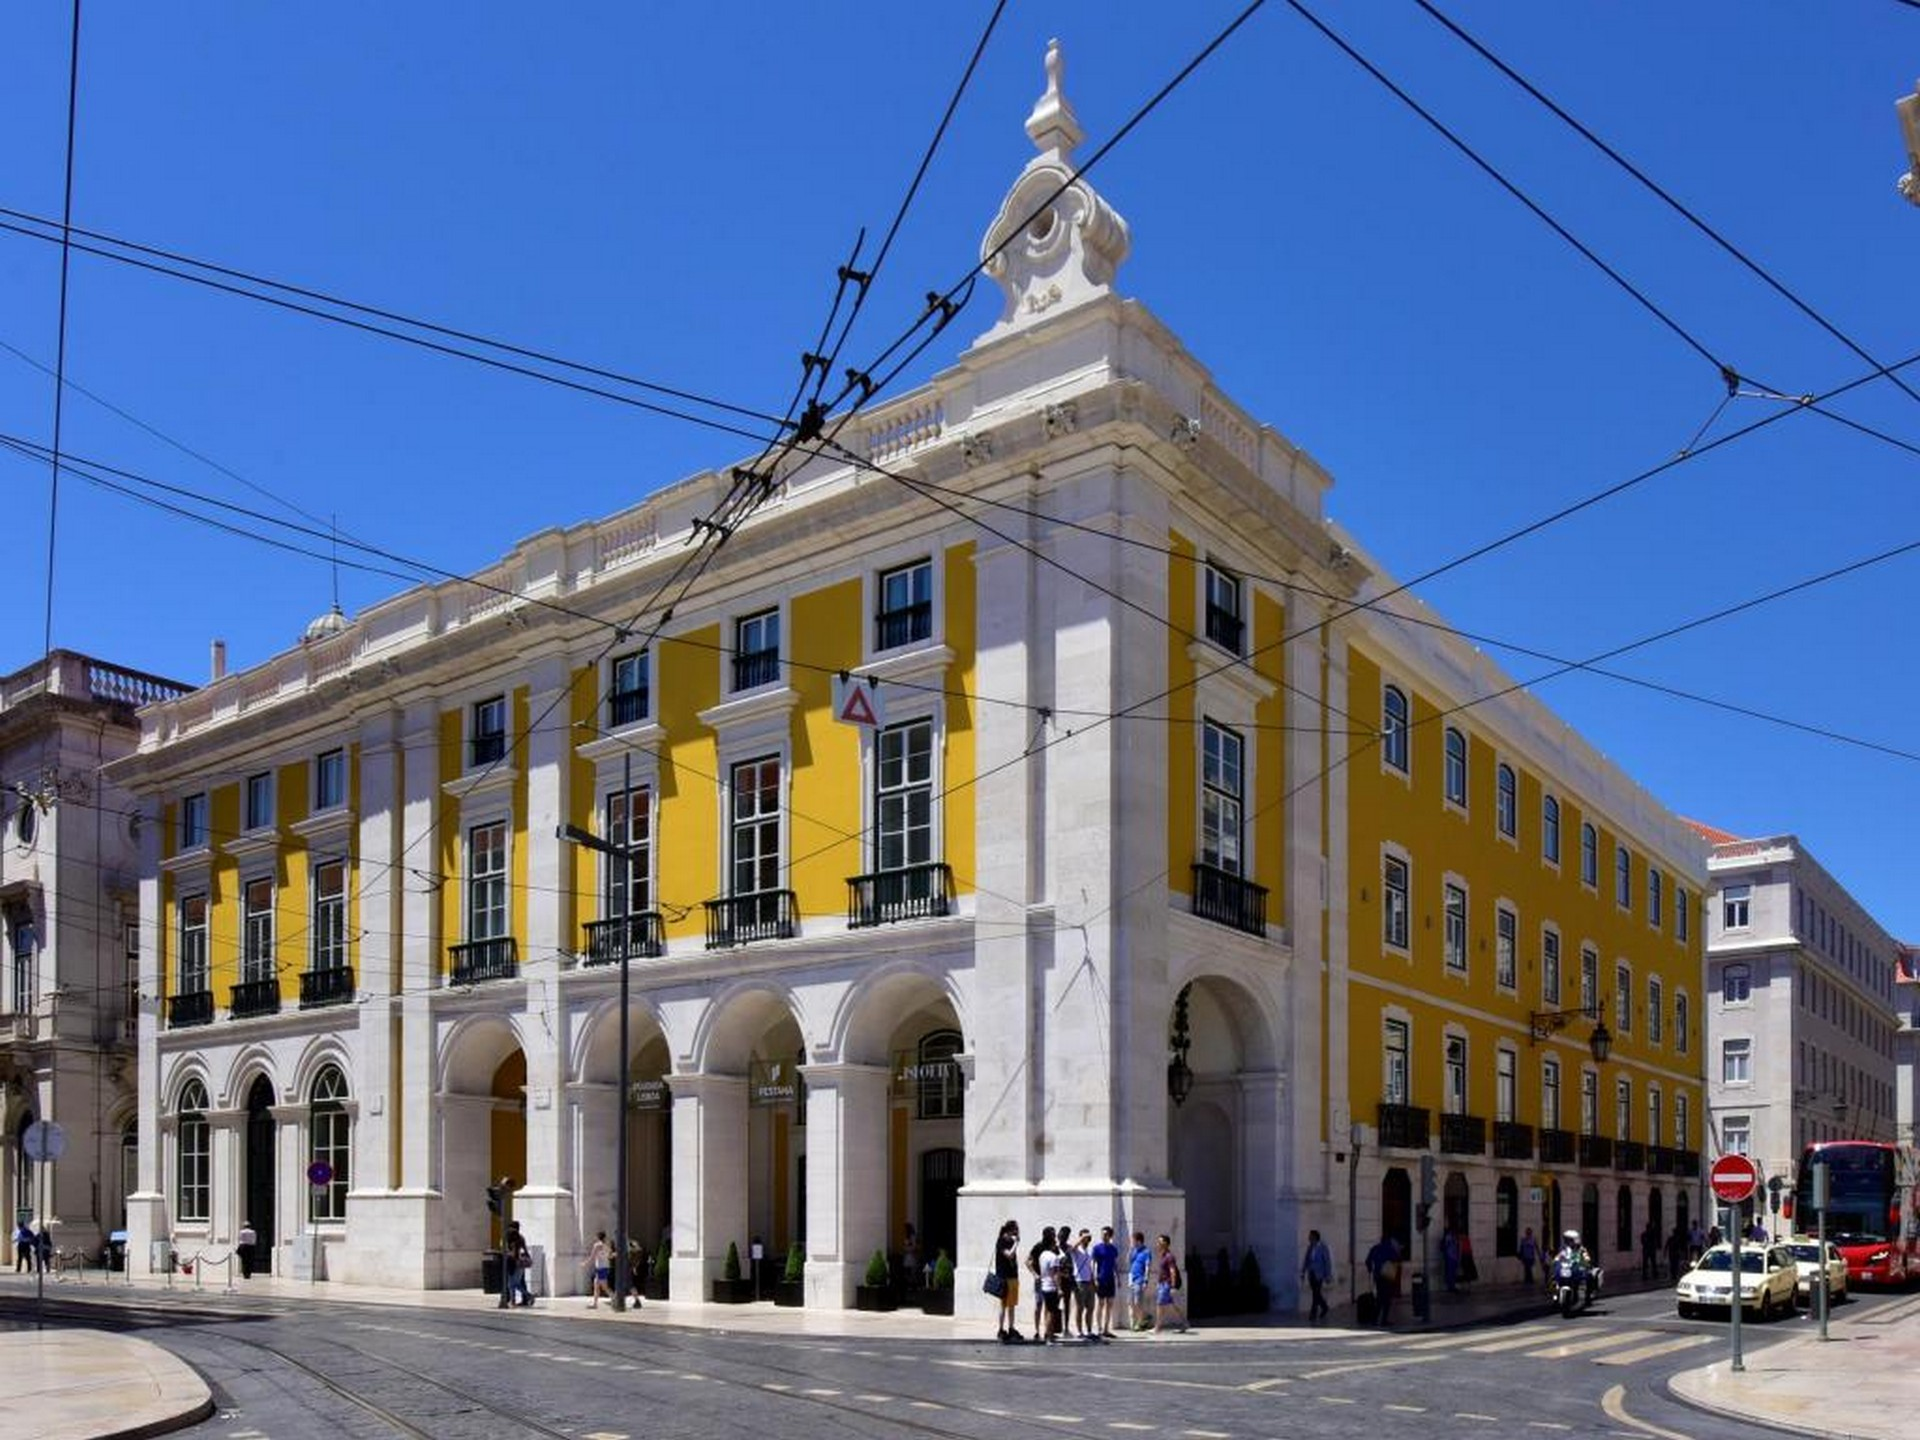 Historic Hotels in Portugal: Lisboa what to do in lisbon What To Do In Lisbon: 48 Hours In The Capital Historic Hotels in Portugal 5